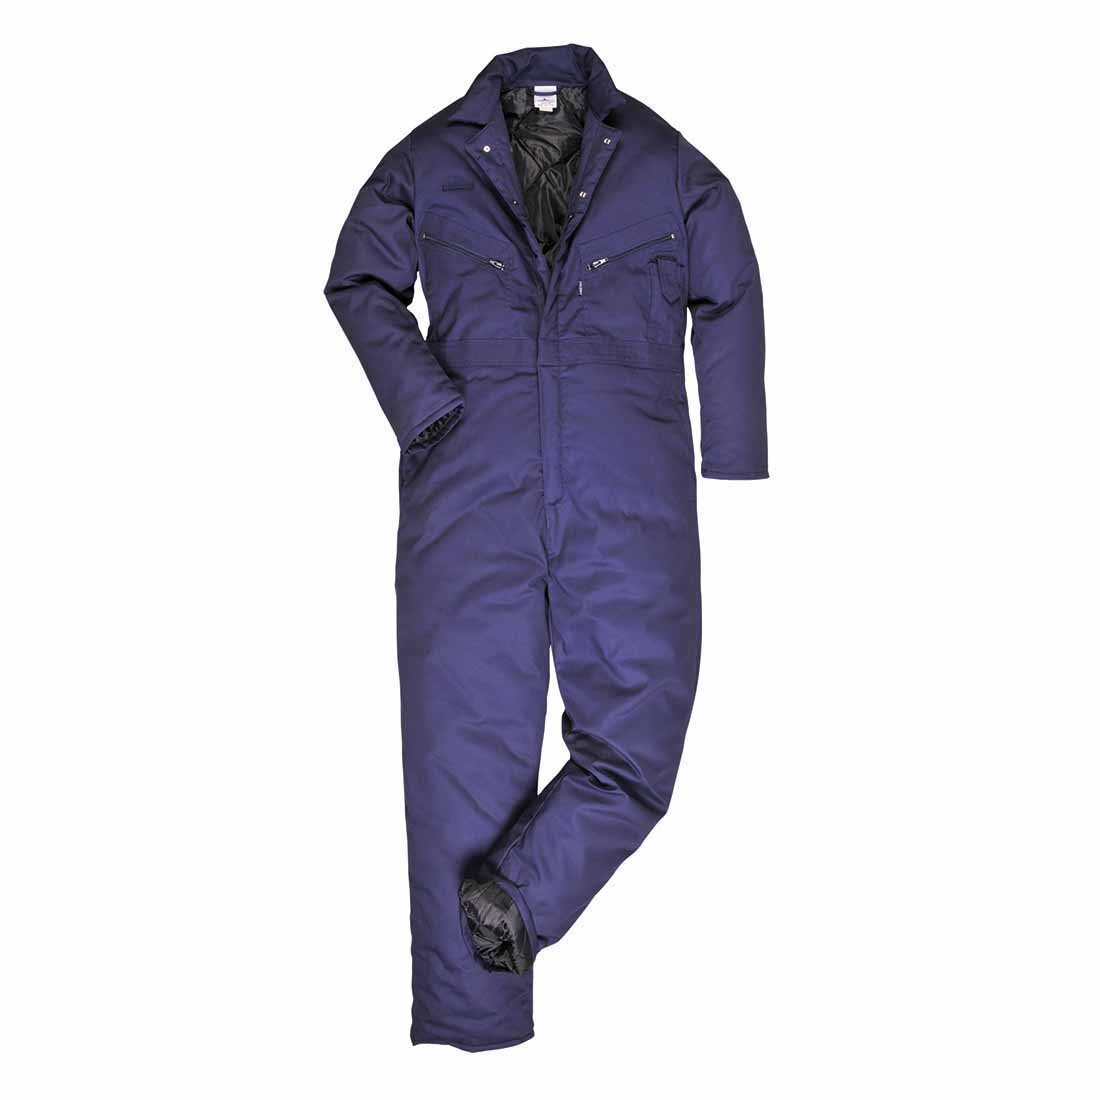 sUw - Orkney Rugged Workwear All Season Lined Coverall Navy Small S816NARS